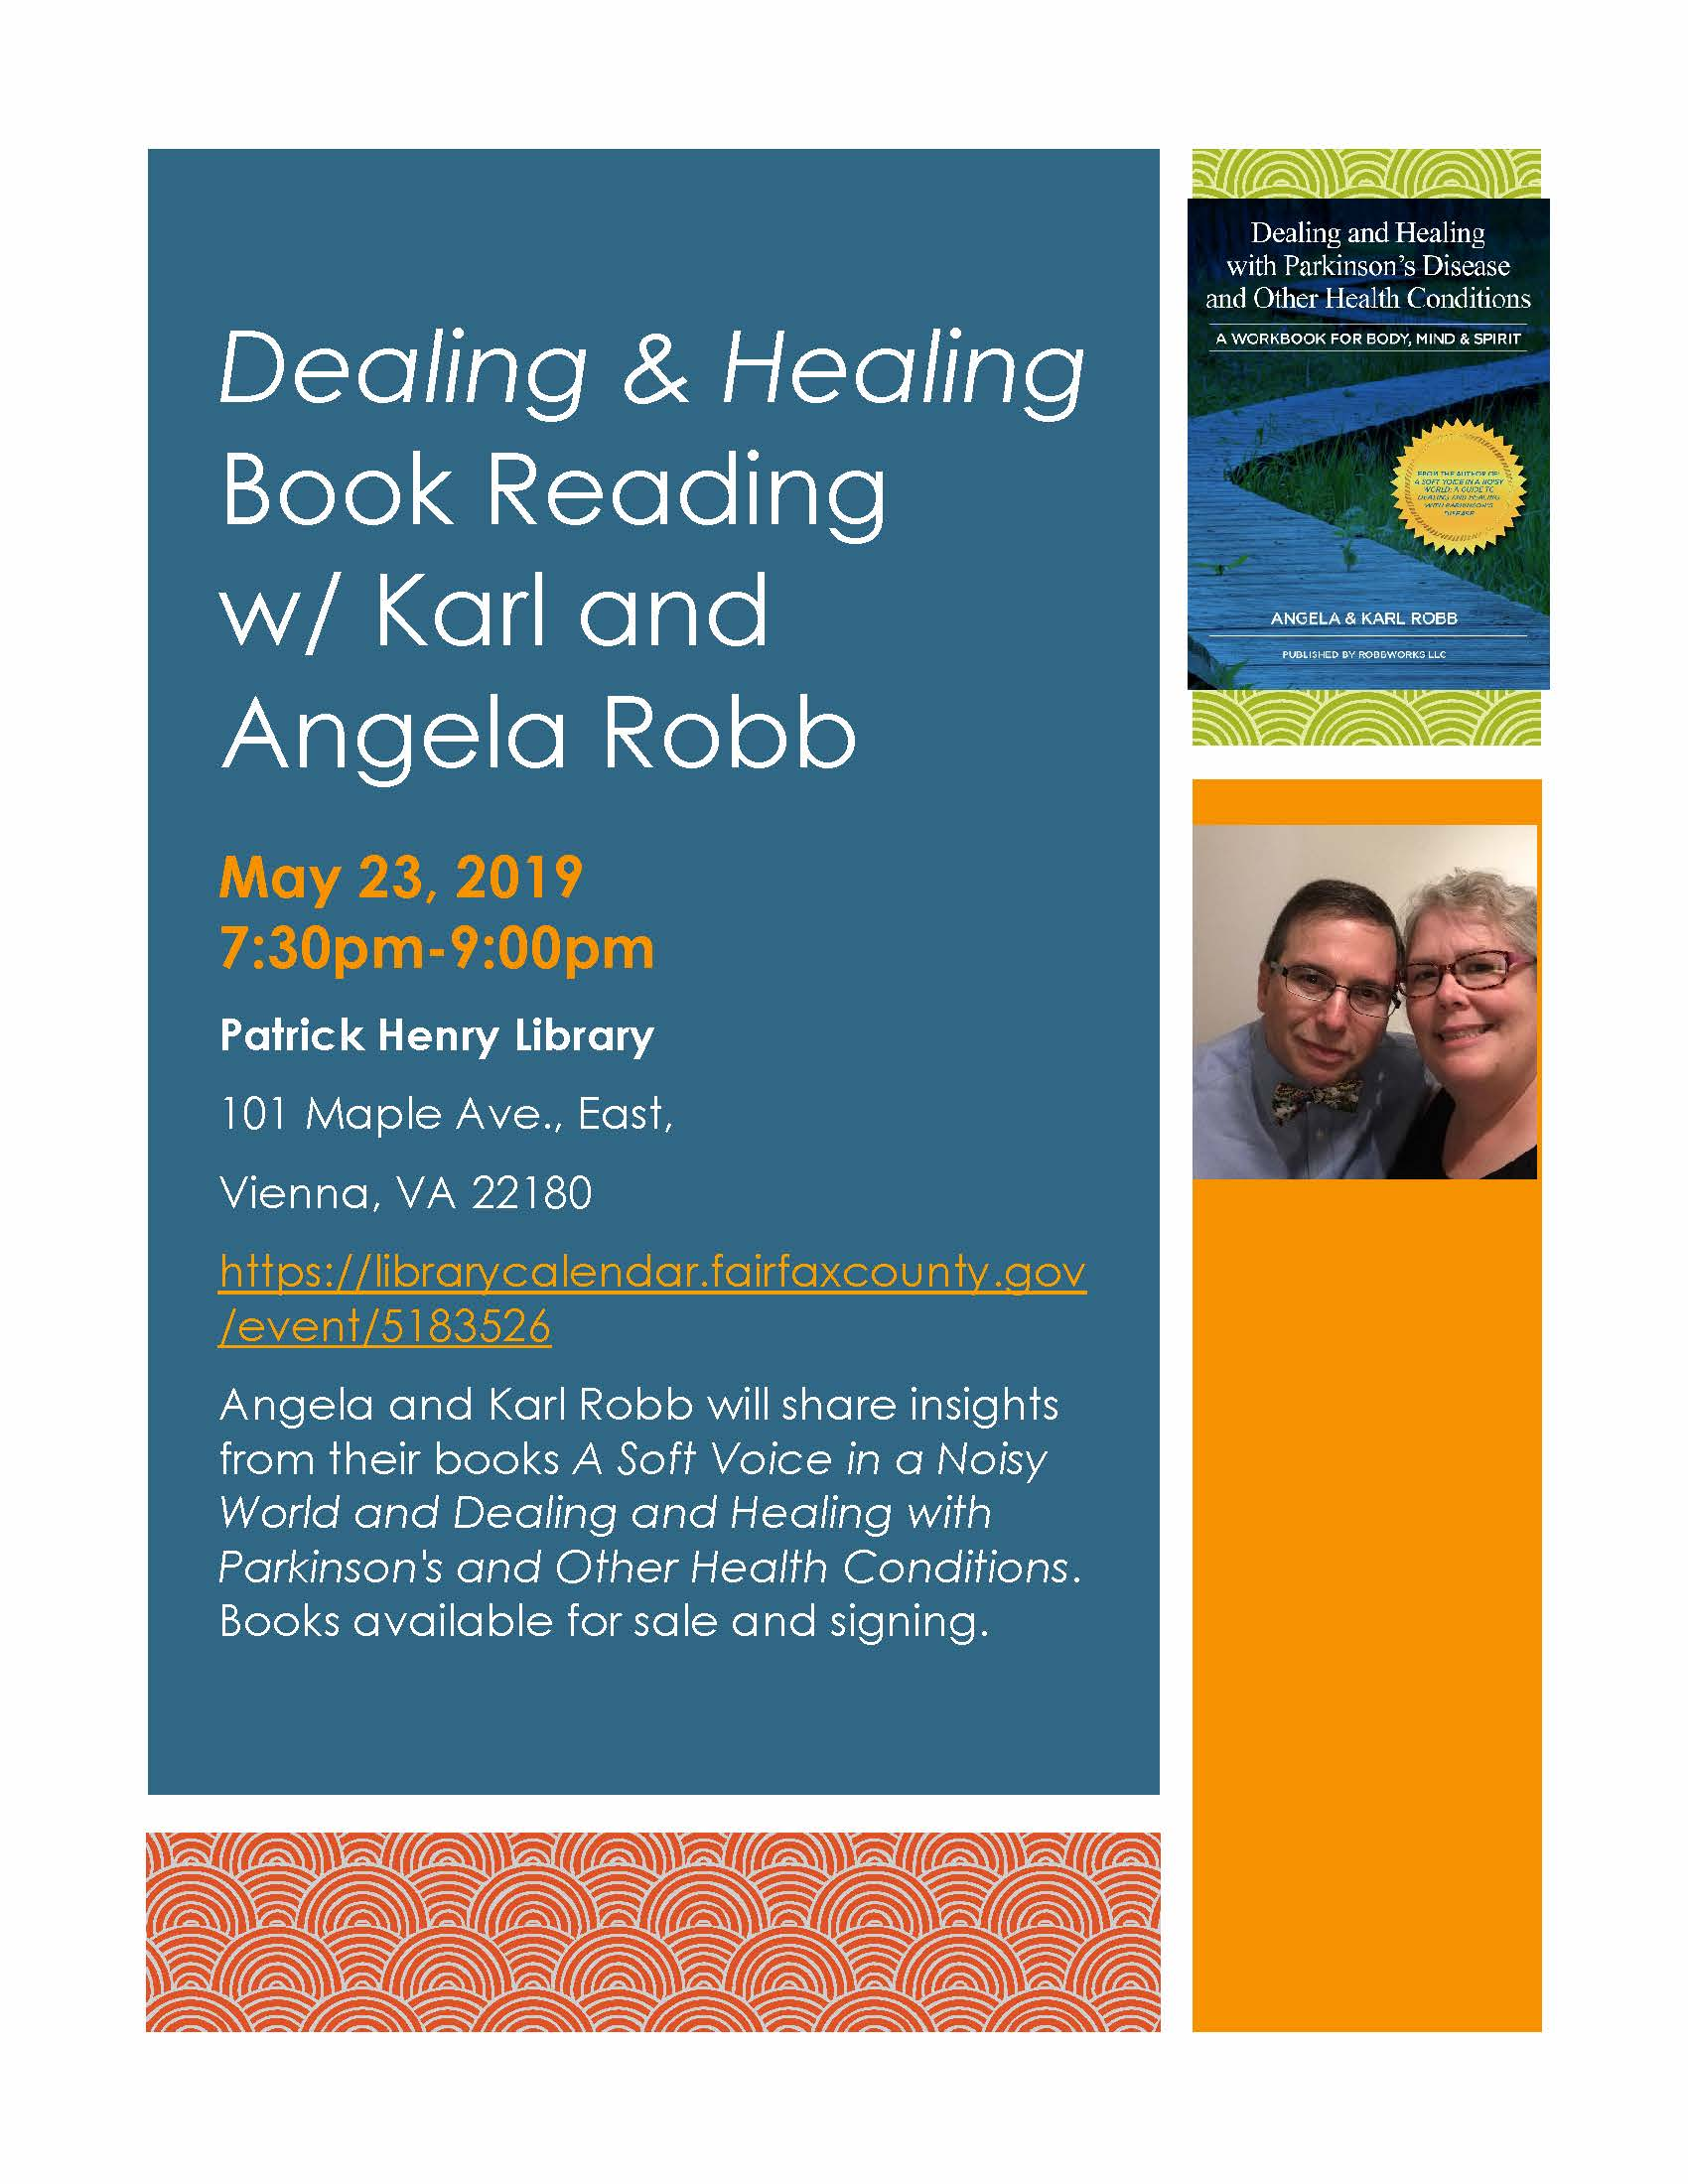 Thursday 5/23/19 Dealing & Healing Book Reading & Author event in NoVA